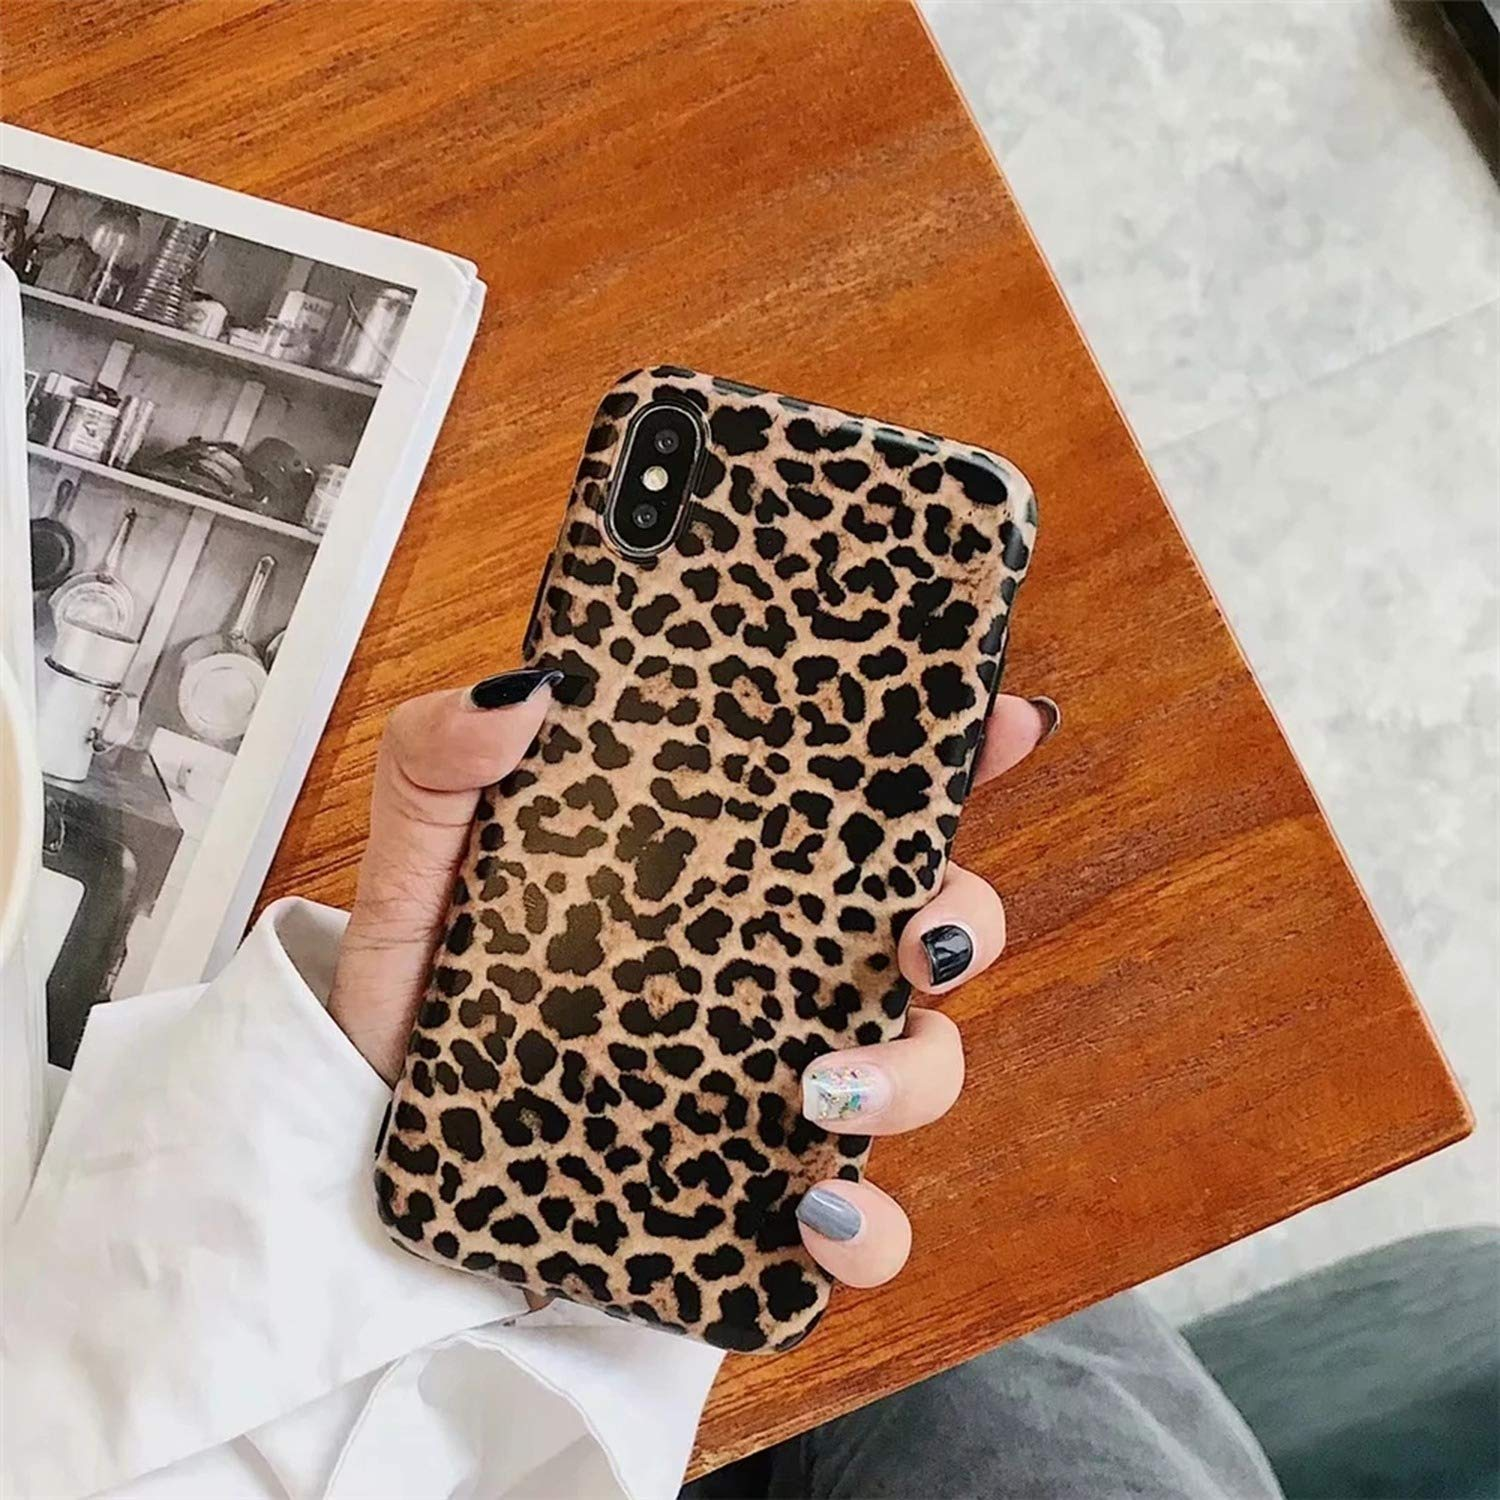 Amazon.com: Retro Tiger Leopard Print Panther Silica Soft IMD Phone case for iPhone Xs XR XS Max X 6 6s 7 8 Plus Mobile Phone Shell Coque,JJ4D50,for iPhone ...